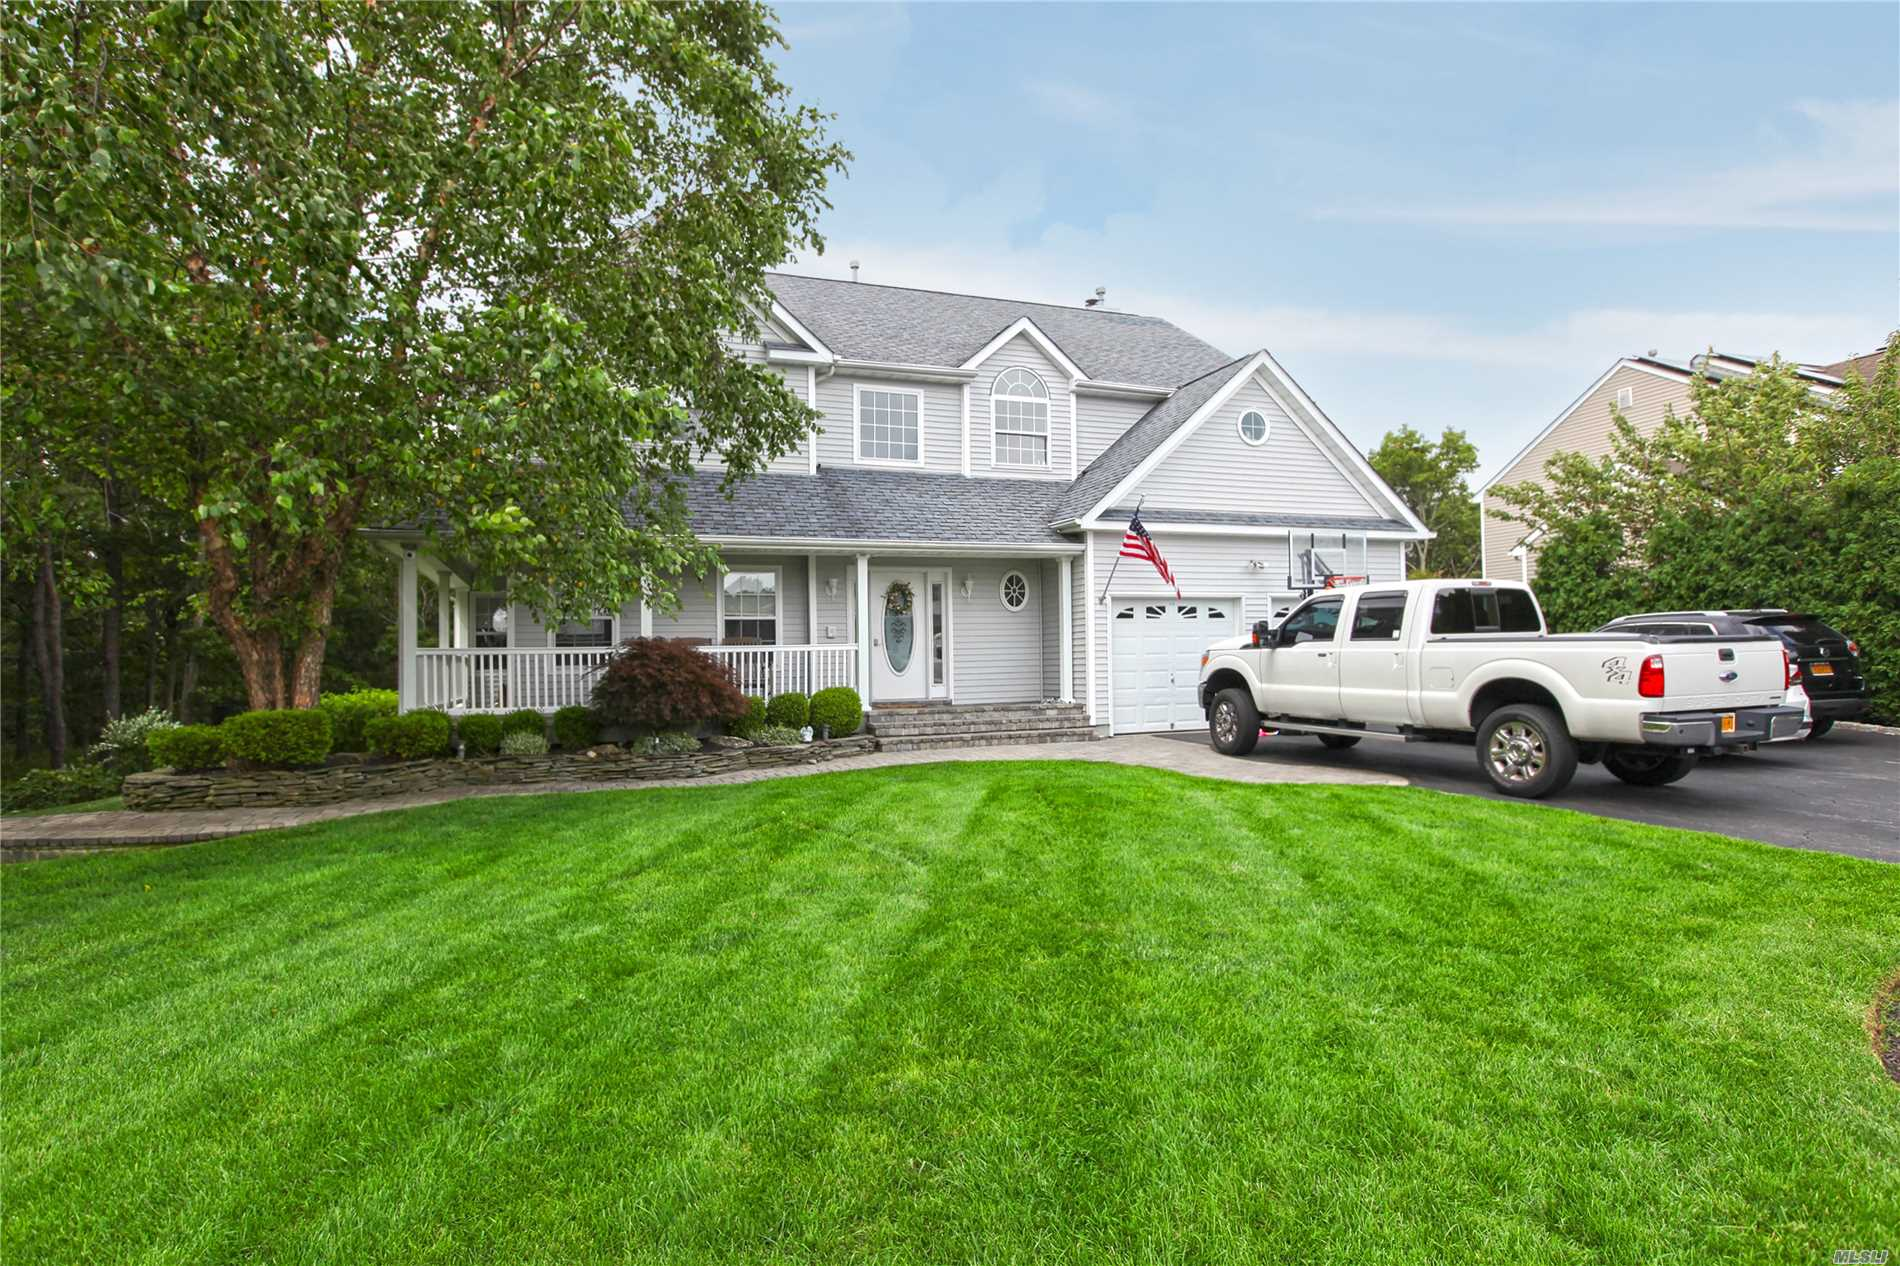 Fabulous Location!! This Home Has A Master Suite, 3 Bdrms, Full Bath, Lr, Formal Dining Rm, Eik, Den, Office. The 2 Car Attached Garage Has Hot & Cold Water. Backyard Boosts Privacy Galore, And Includes A Gas Barbecue.